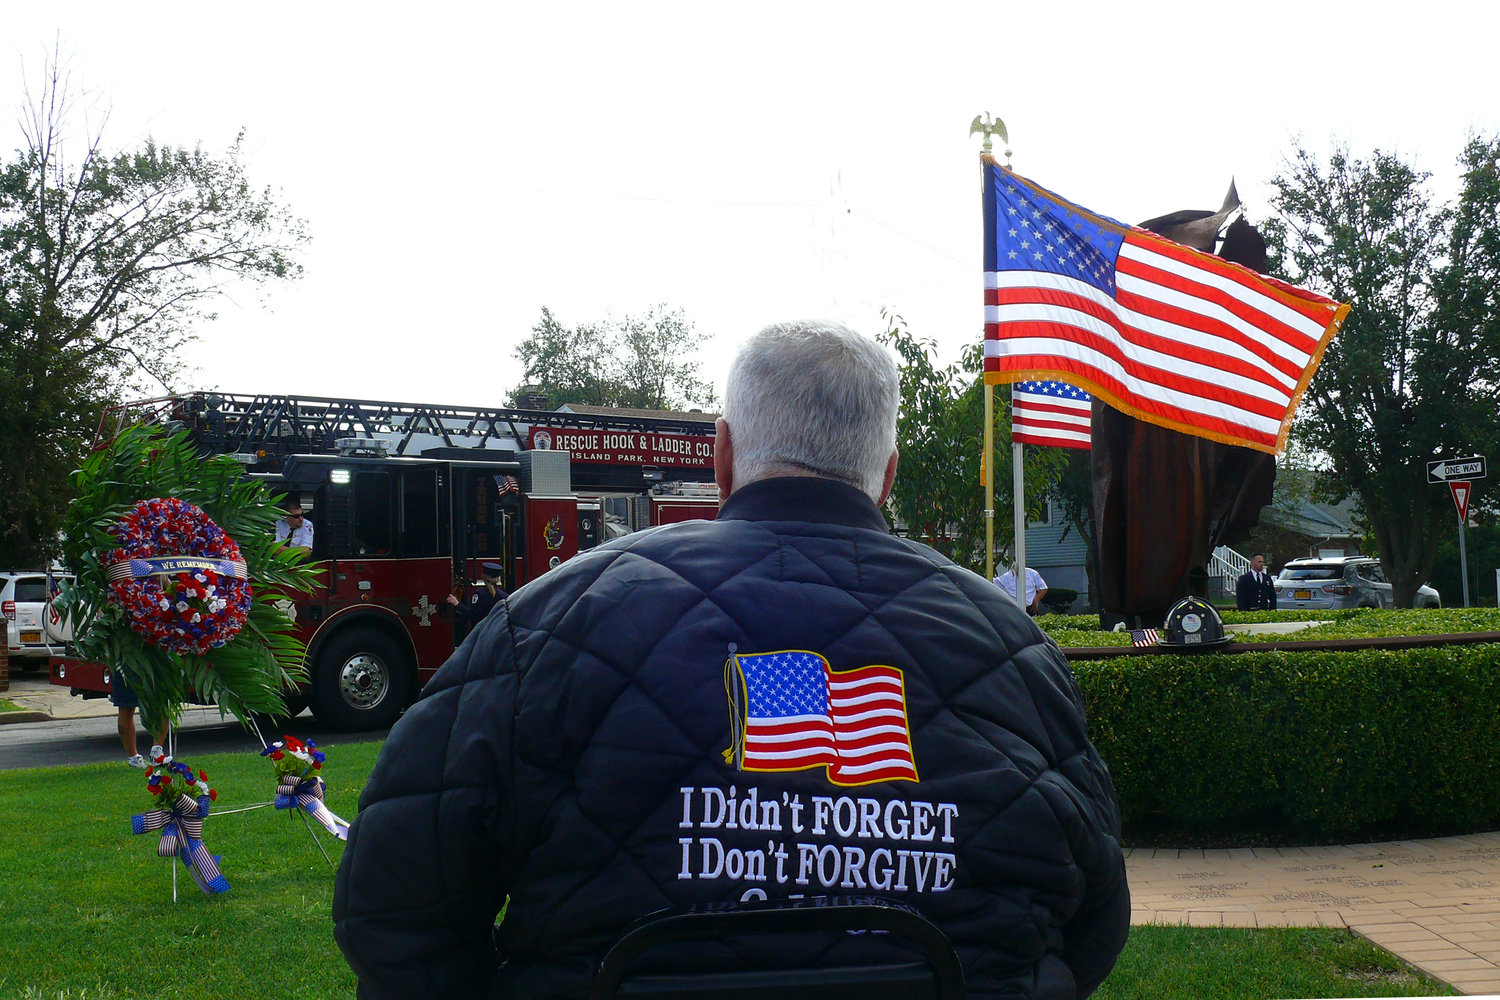 Island Park resident Todd Gleason operated a crane near the World Trade Center on Sept. 11, 2001. He stayed at ground zero for 28 days operating a crane and tried to find survivors. His jacket encouraged others to never forget what happened that day.